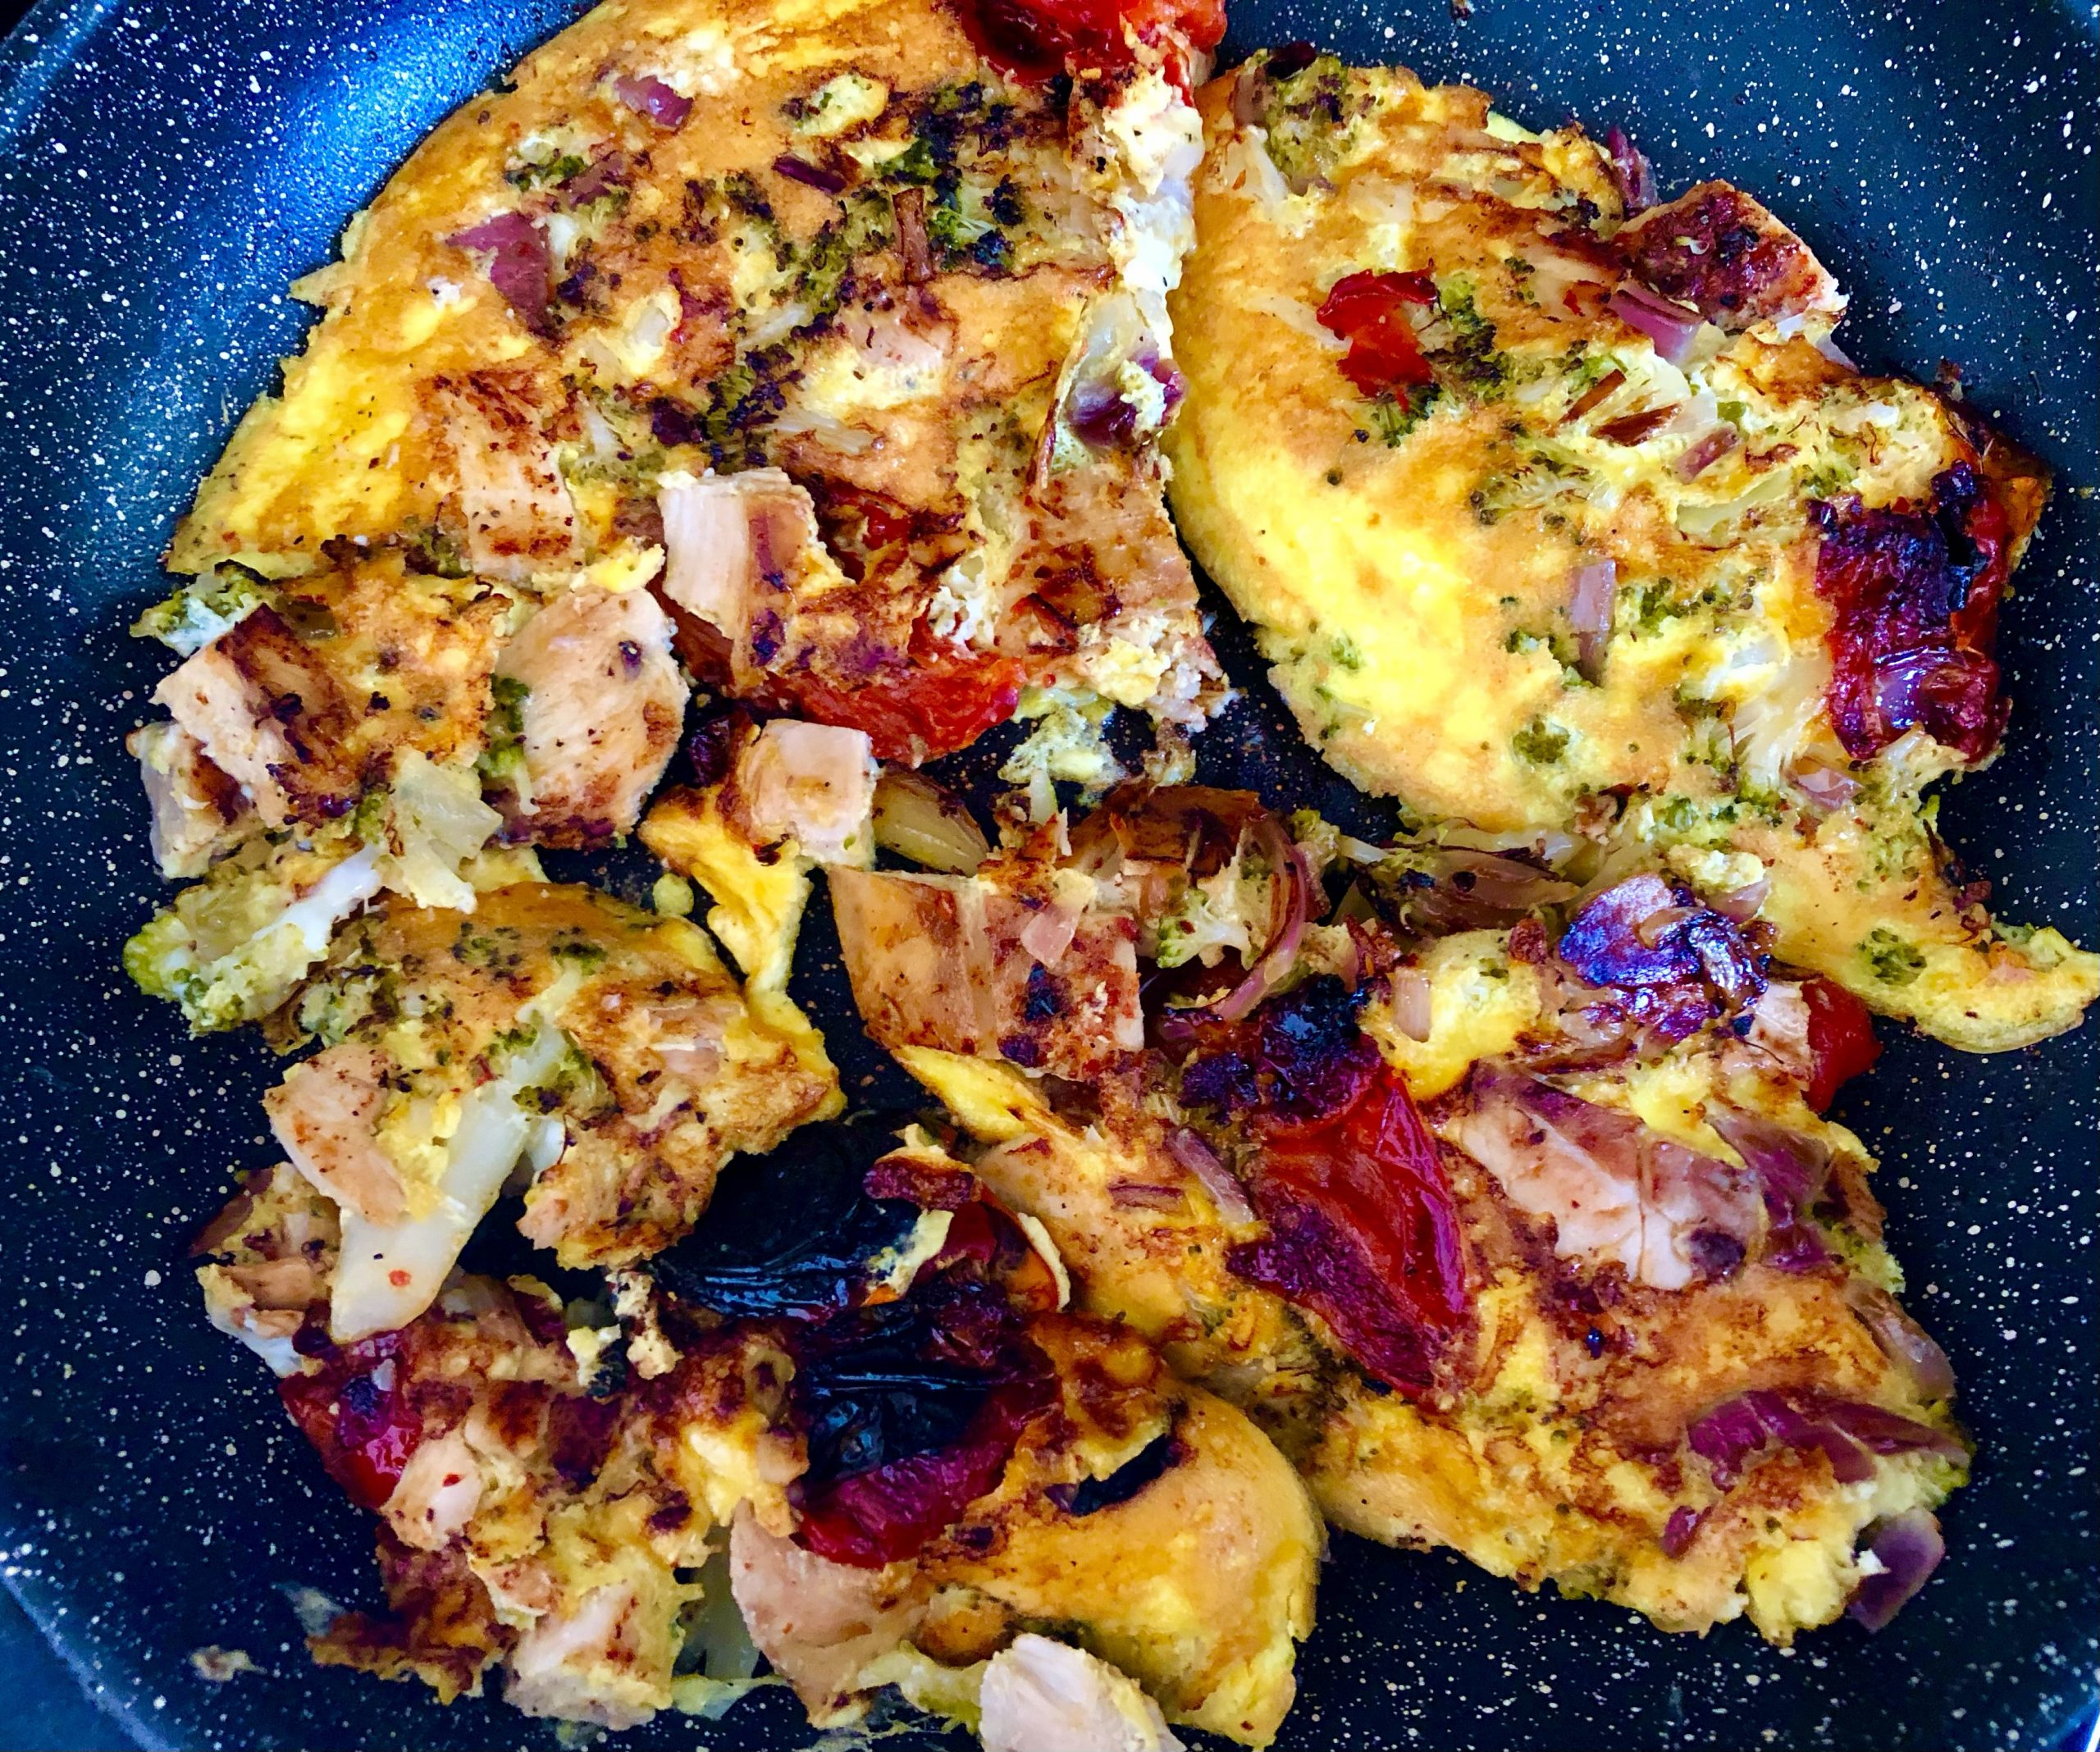 Frittata with diced chicken breast, broccoli and peppers